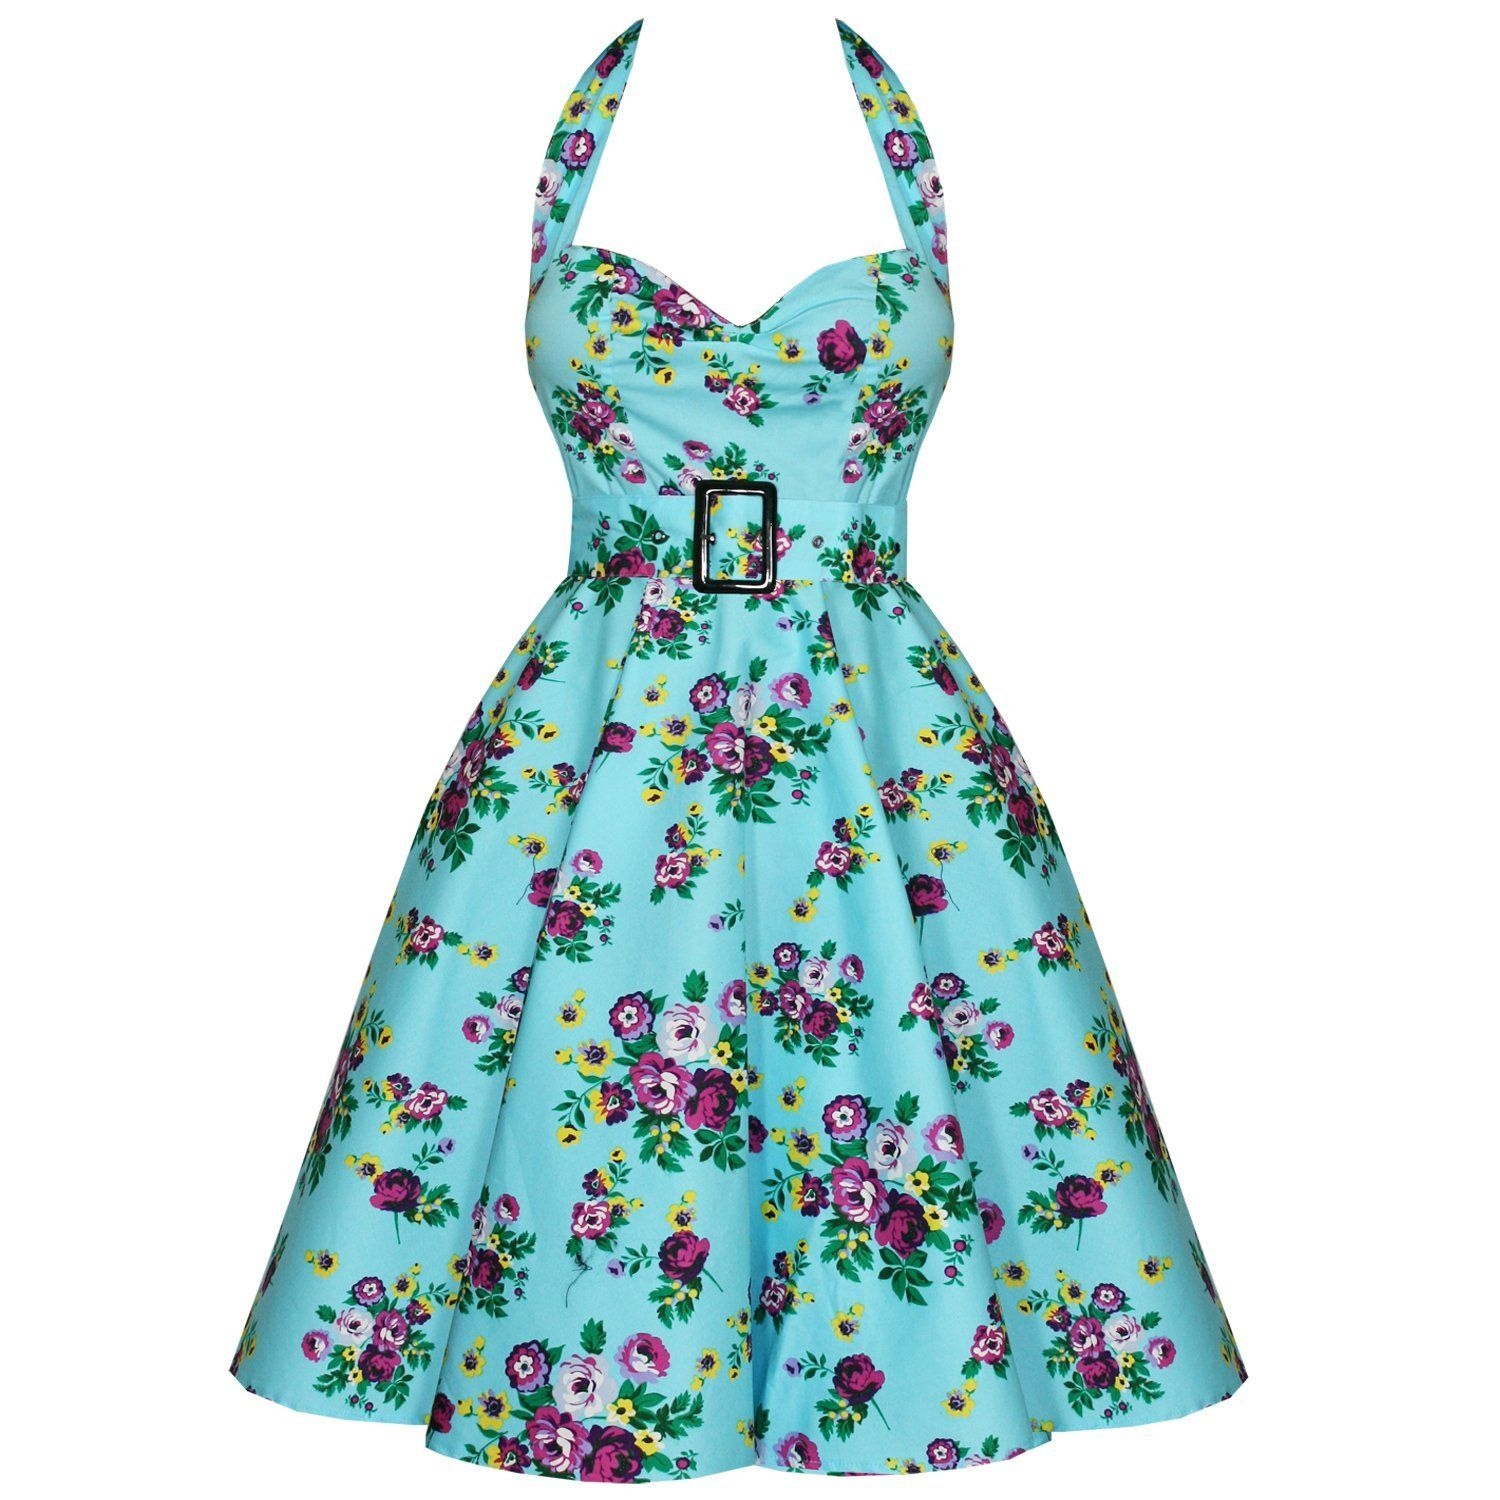 50s Style Rock \'n\' Roll Dresses by Hell Bunny | Bunny, Rock and Clothes